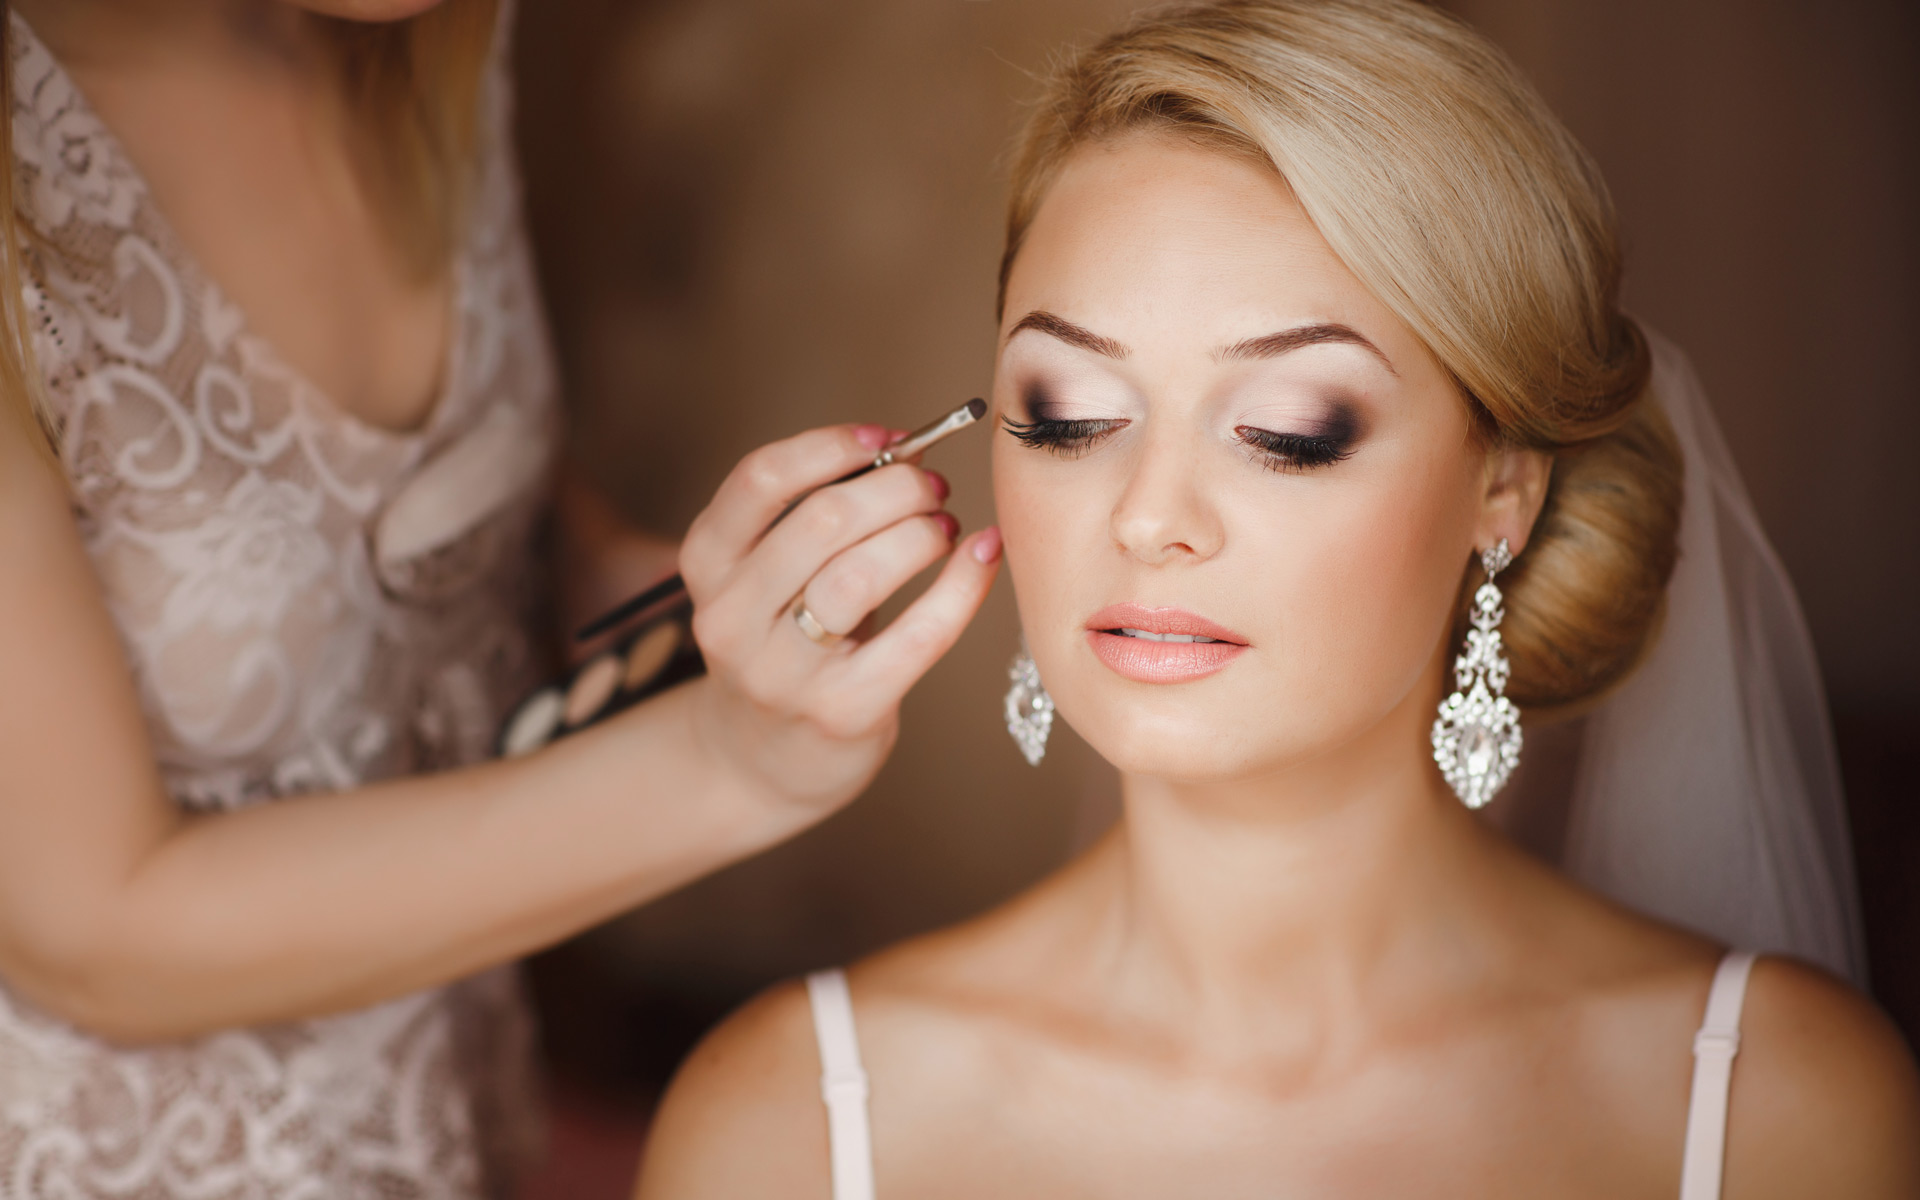 10 top tips: how to get the most out of your wedding hair and makeup